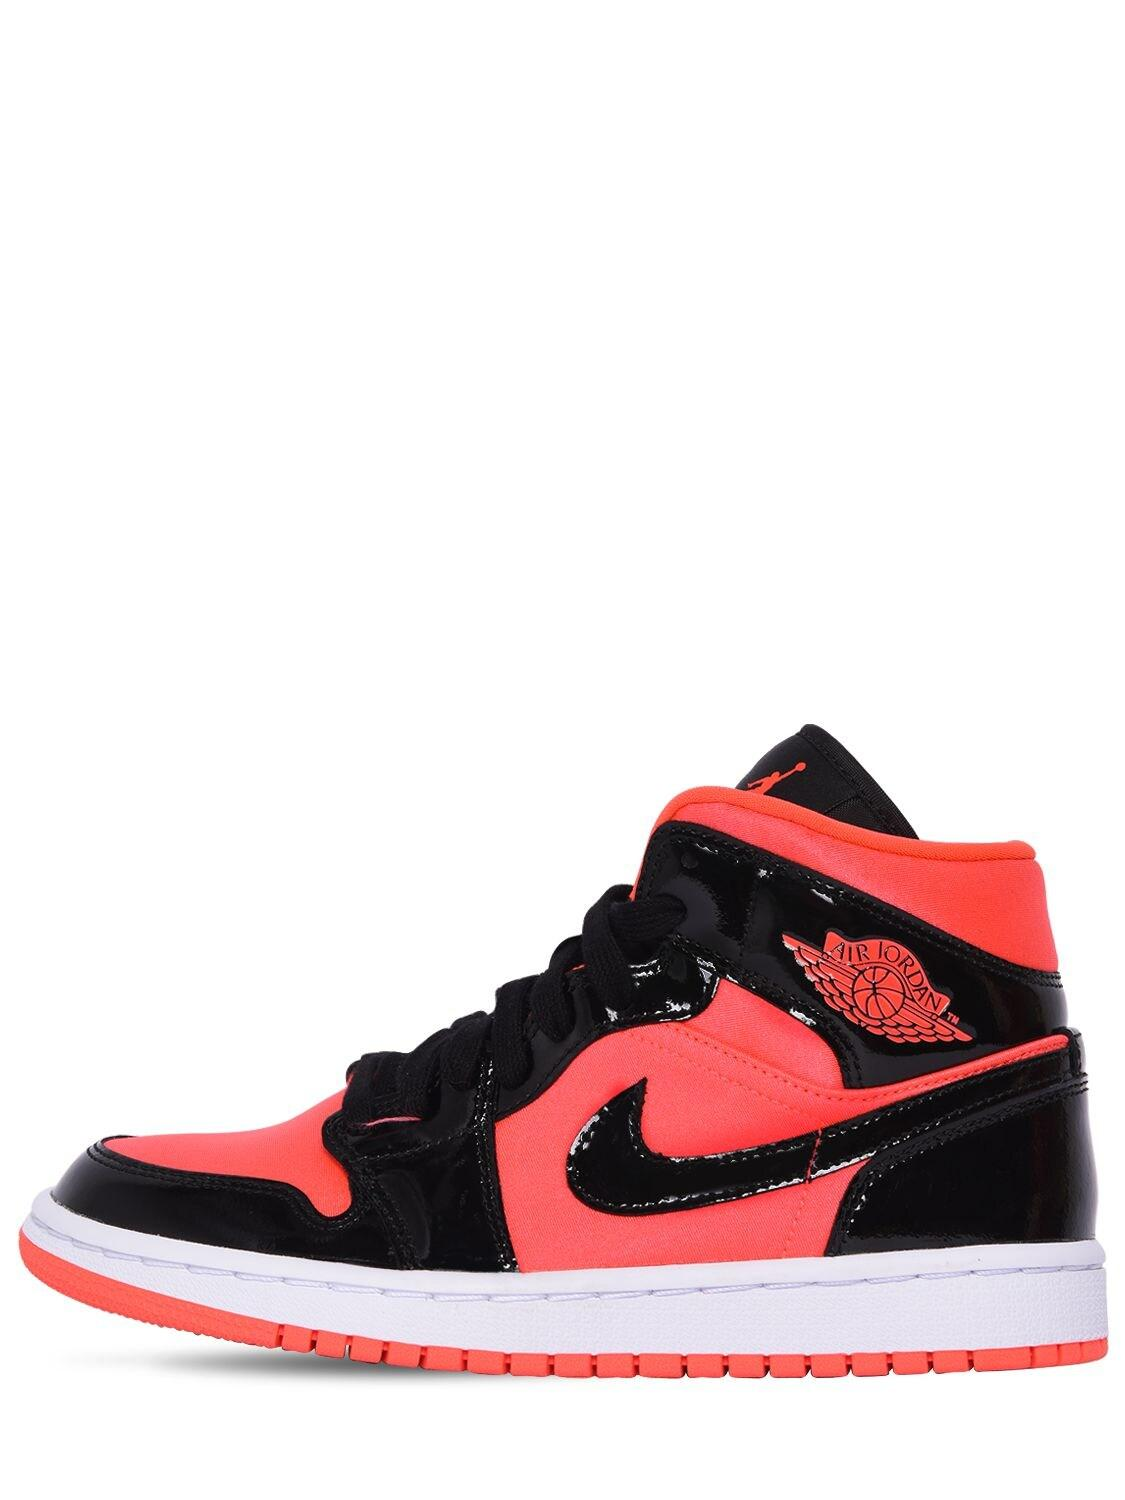 Nike Leather Wmns Air Jordan 1 Mid Sneakers in Bright Crimson (Red ...